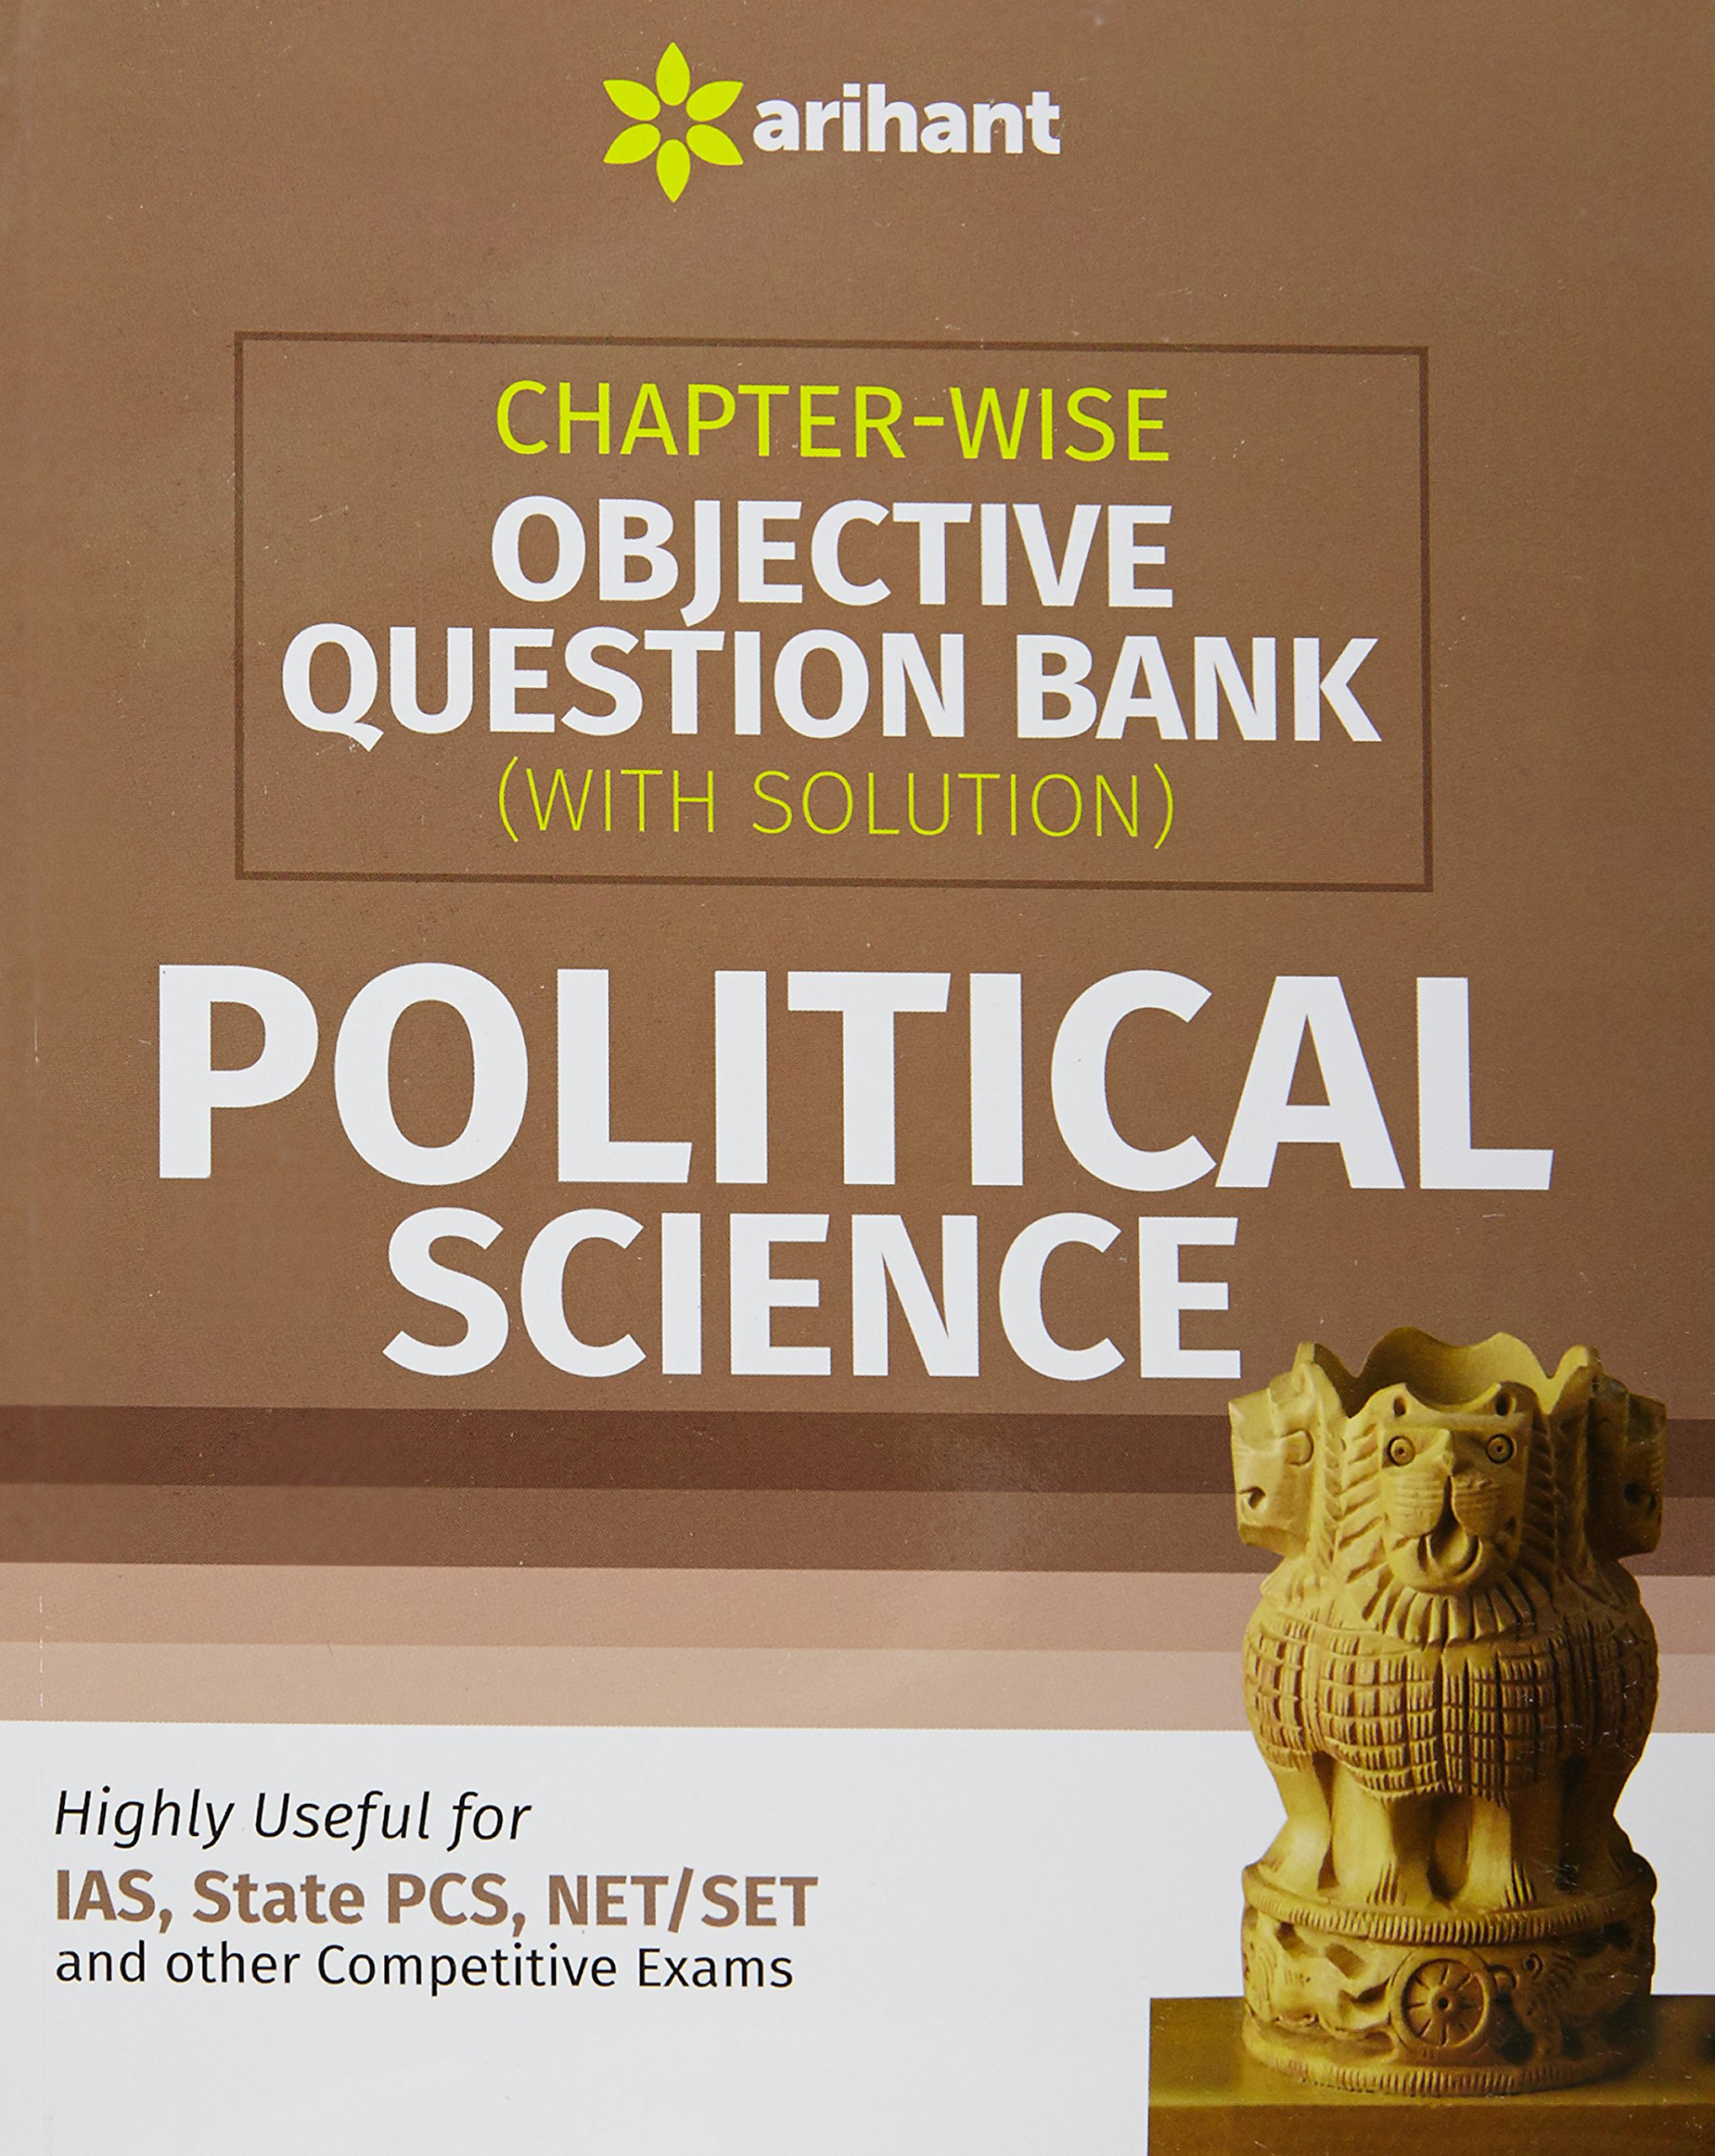 Buy Chapter-wise Objective Question Bank(With Solution